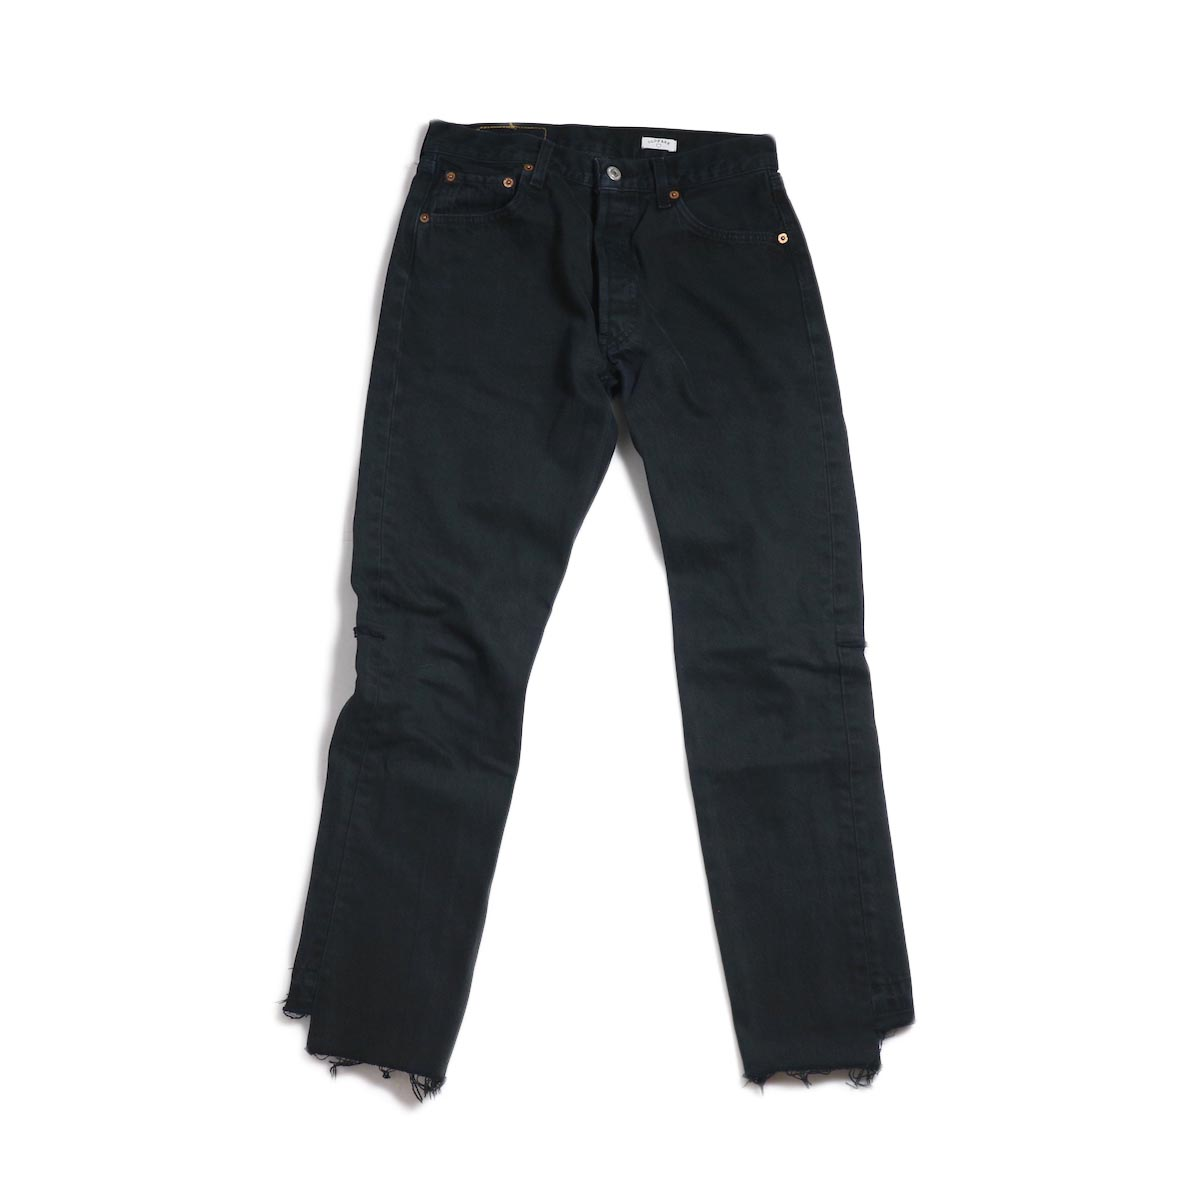 OLD PARK / Back Flare Jeans -Black Ssize (F) 正面